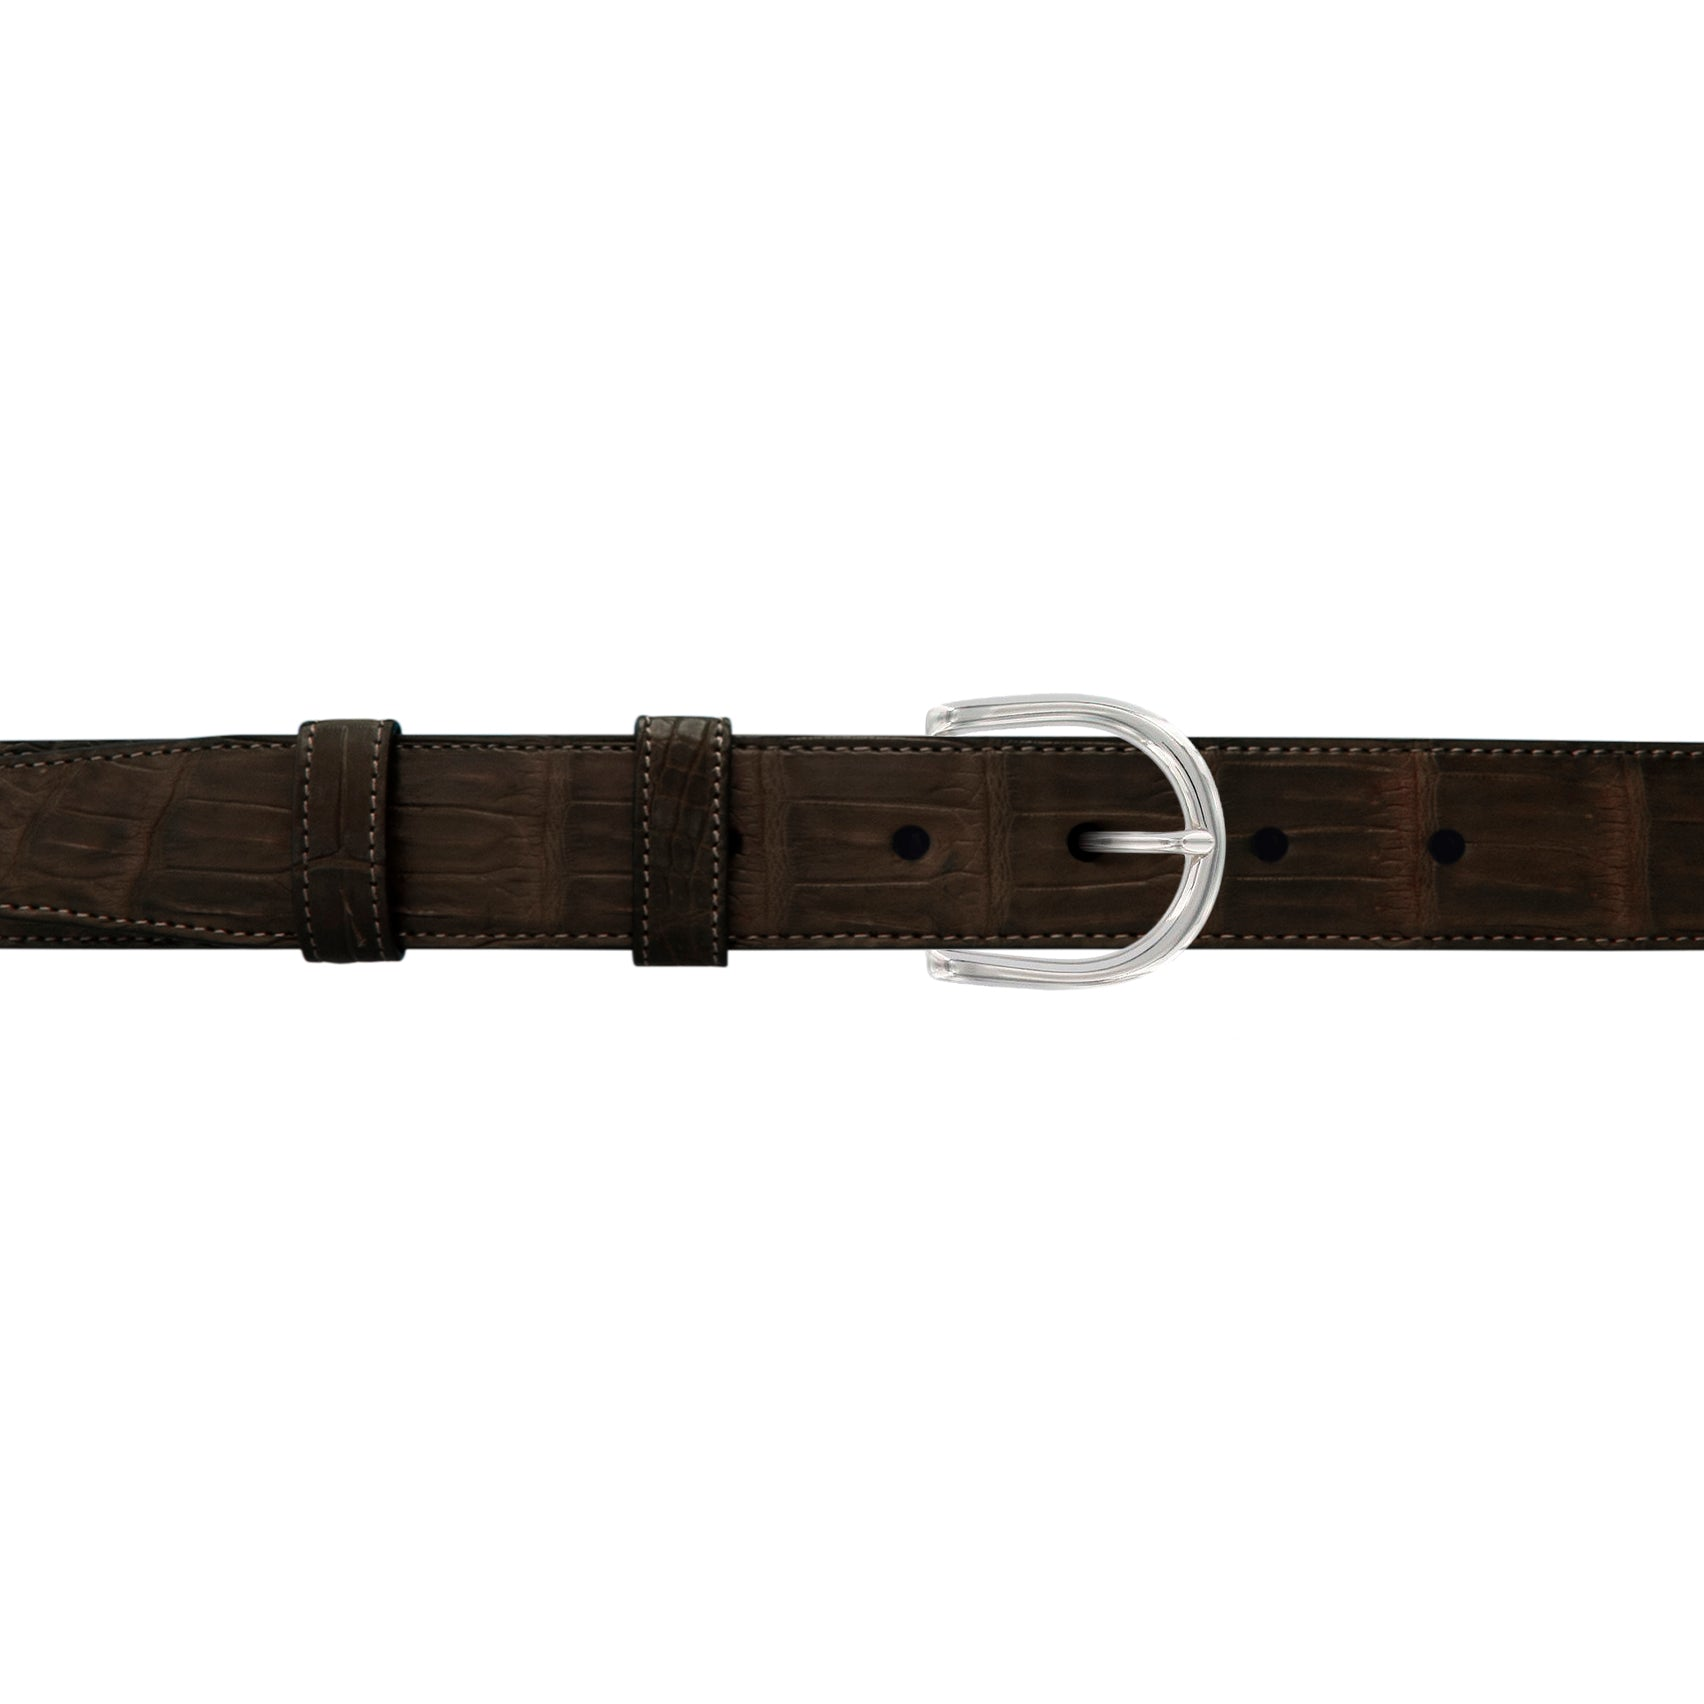 "1"" Espresso Classic Belt with Denver Casual Buckle in Polished Nickel"